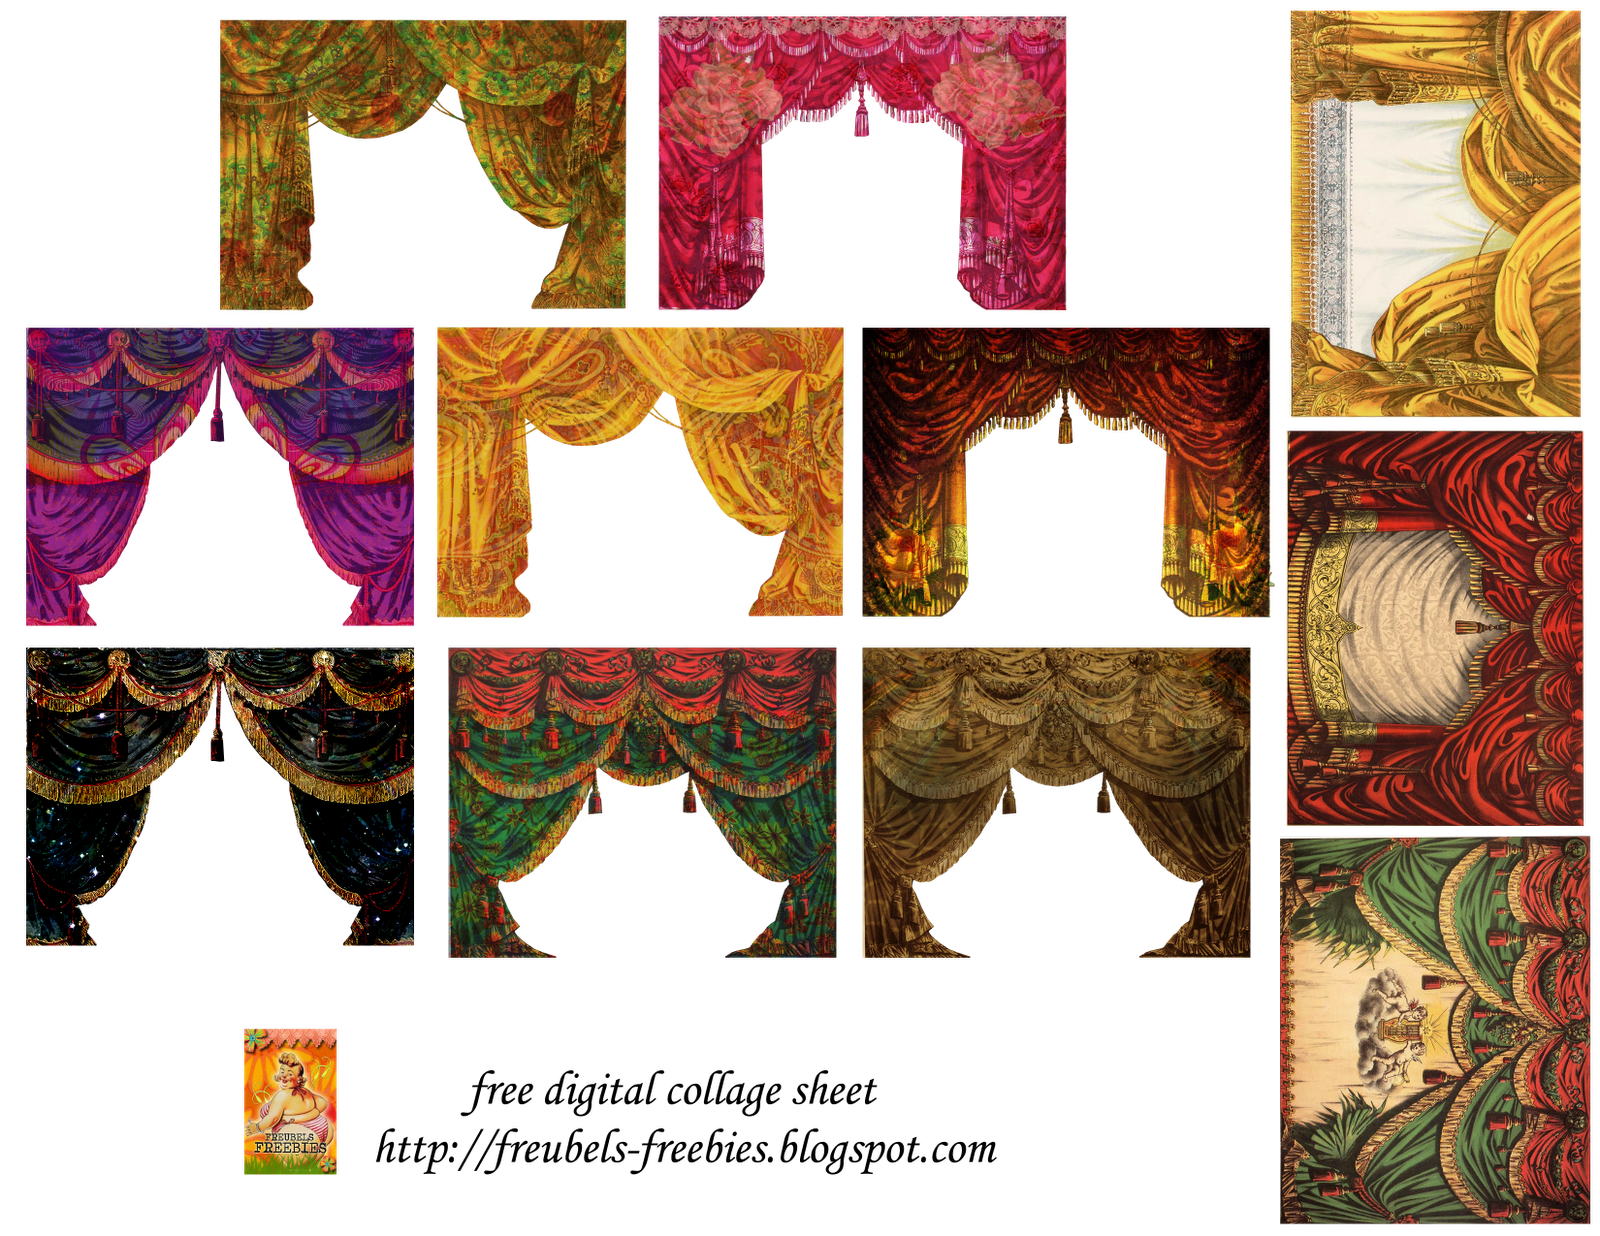 Theatre curtains png - Free Digital Collage Sheet Stage Curtains Png 1600